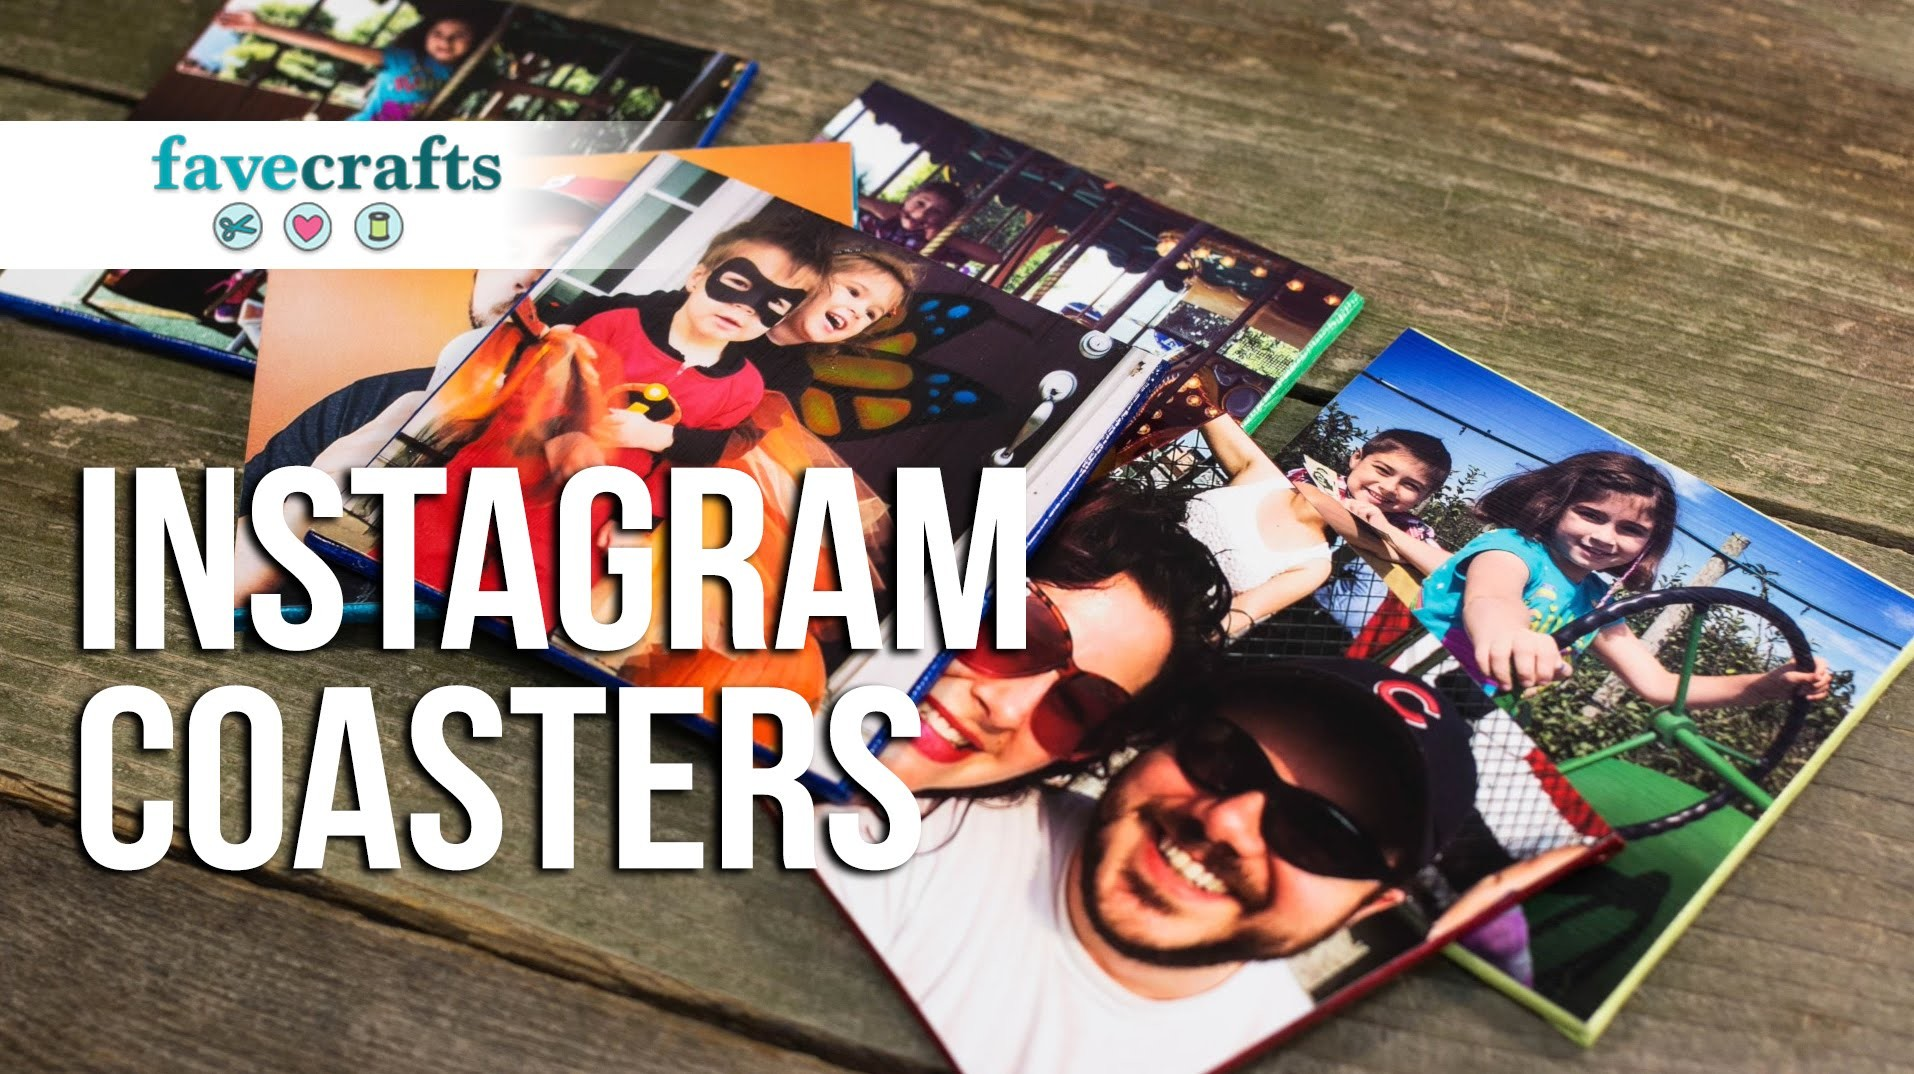 How to Make Coasters: Instagram Coasters